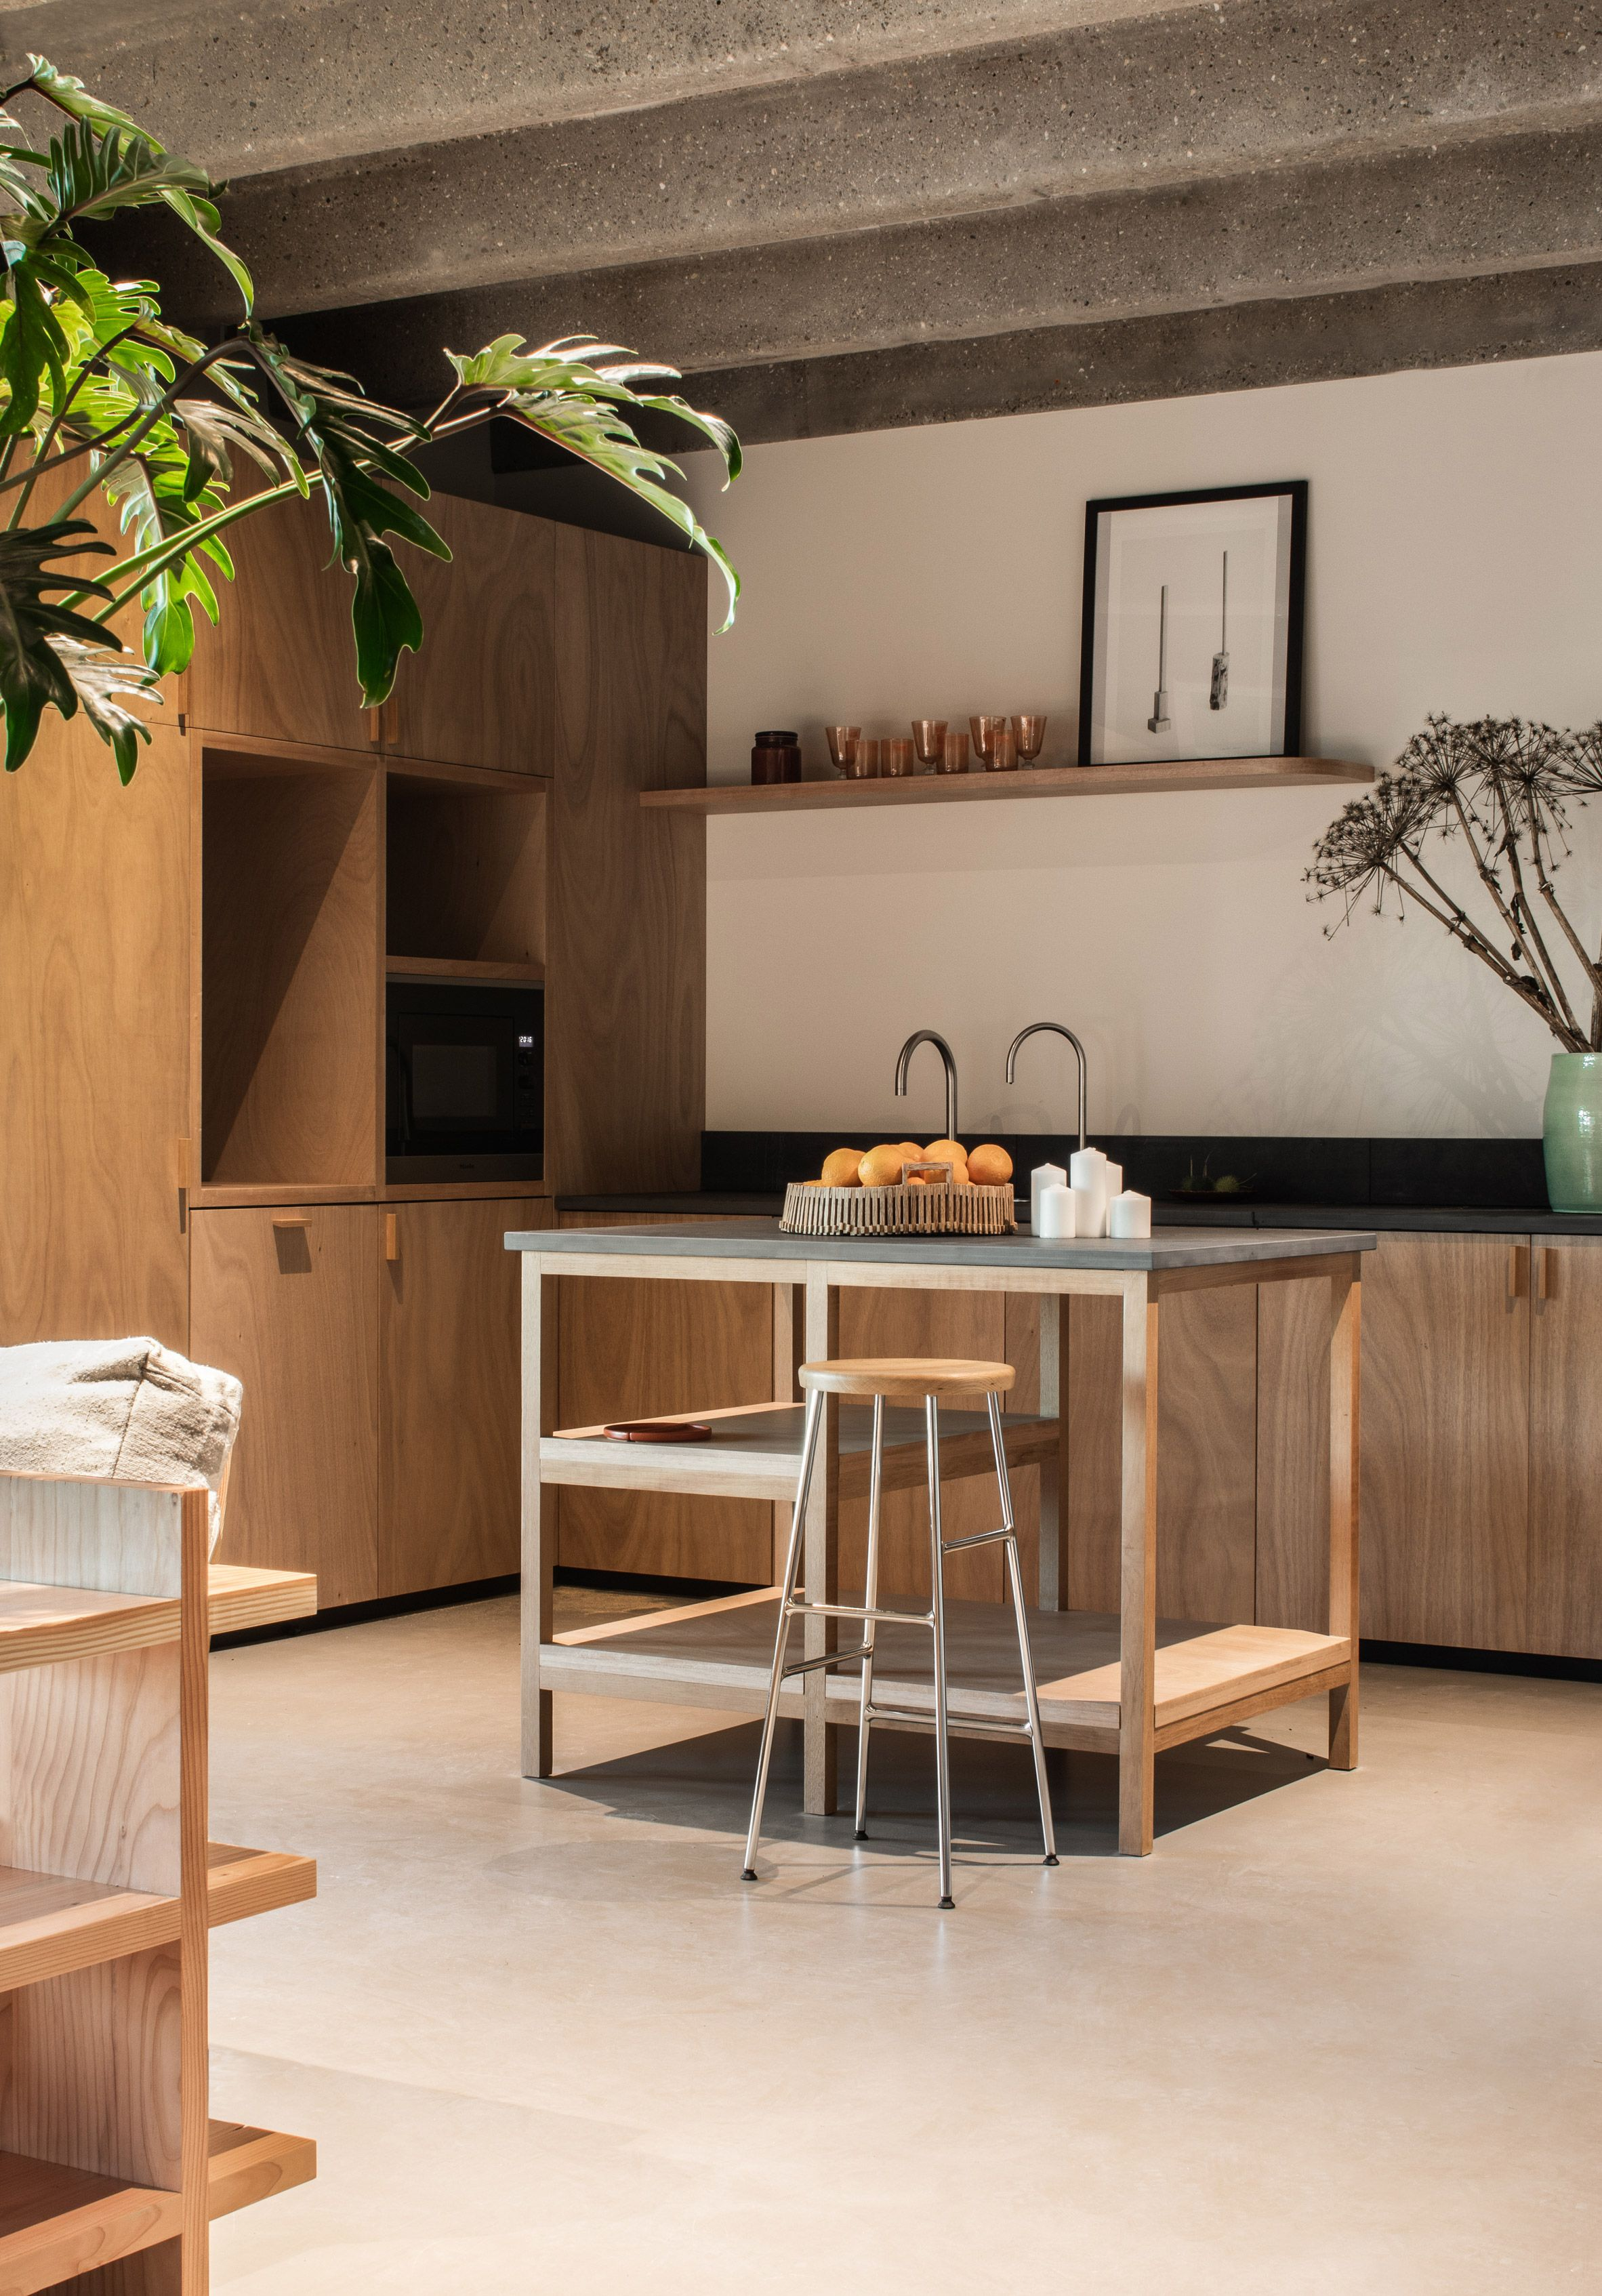 Modernist building in Brussels Fosbury & Sons co